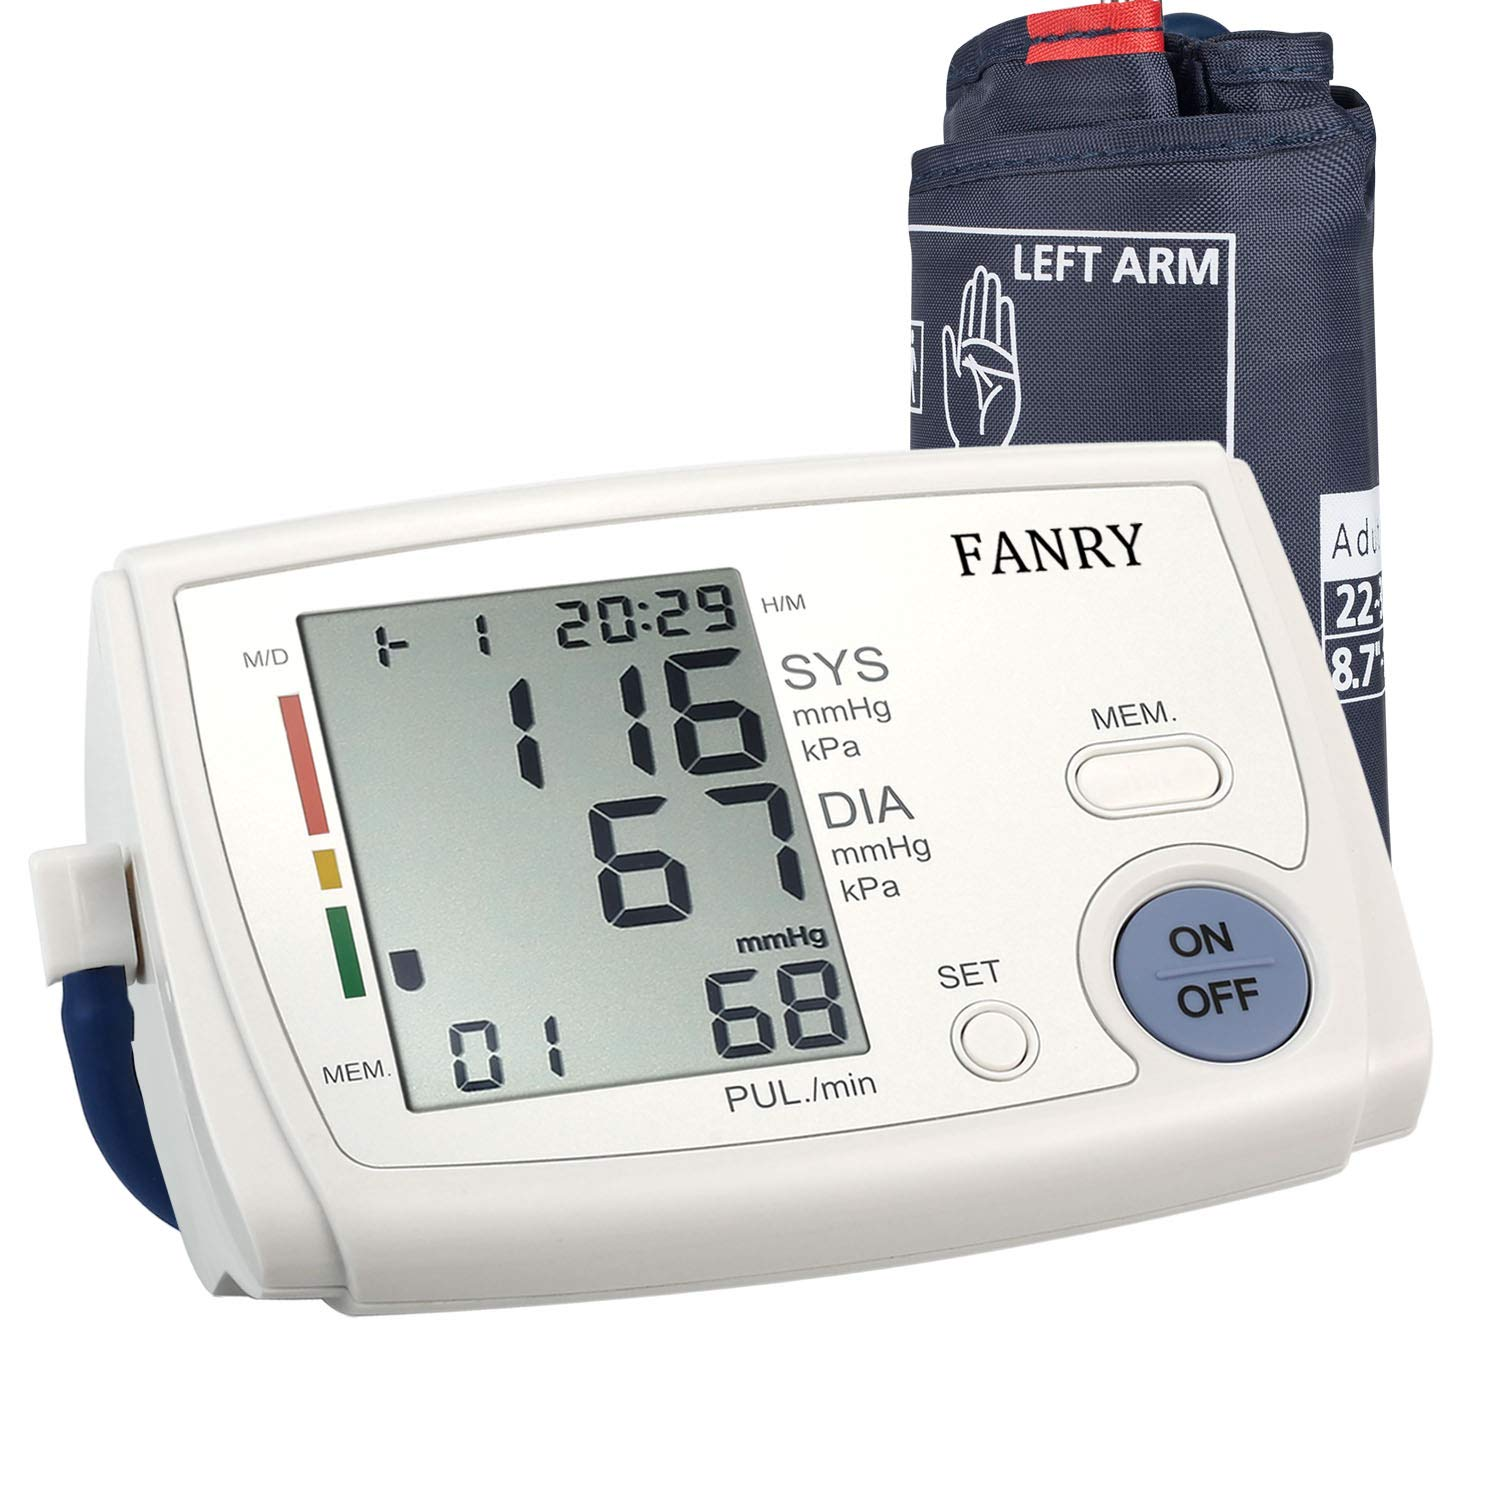 Blood Pressure Monitor Upper Arm,Automatic Accurate Digital Bp Machine for Home Use,Irregular Heartbeat and 90-Readings Memory, 4 AA Batteries Included,8.7 -12.6 Adjustable Wide-Range Cuff